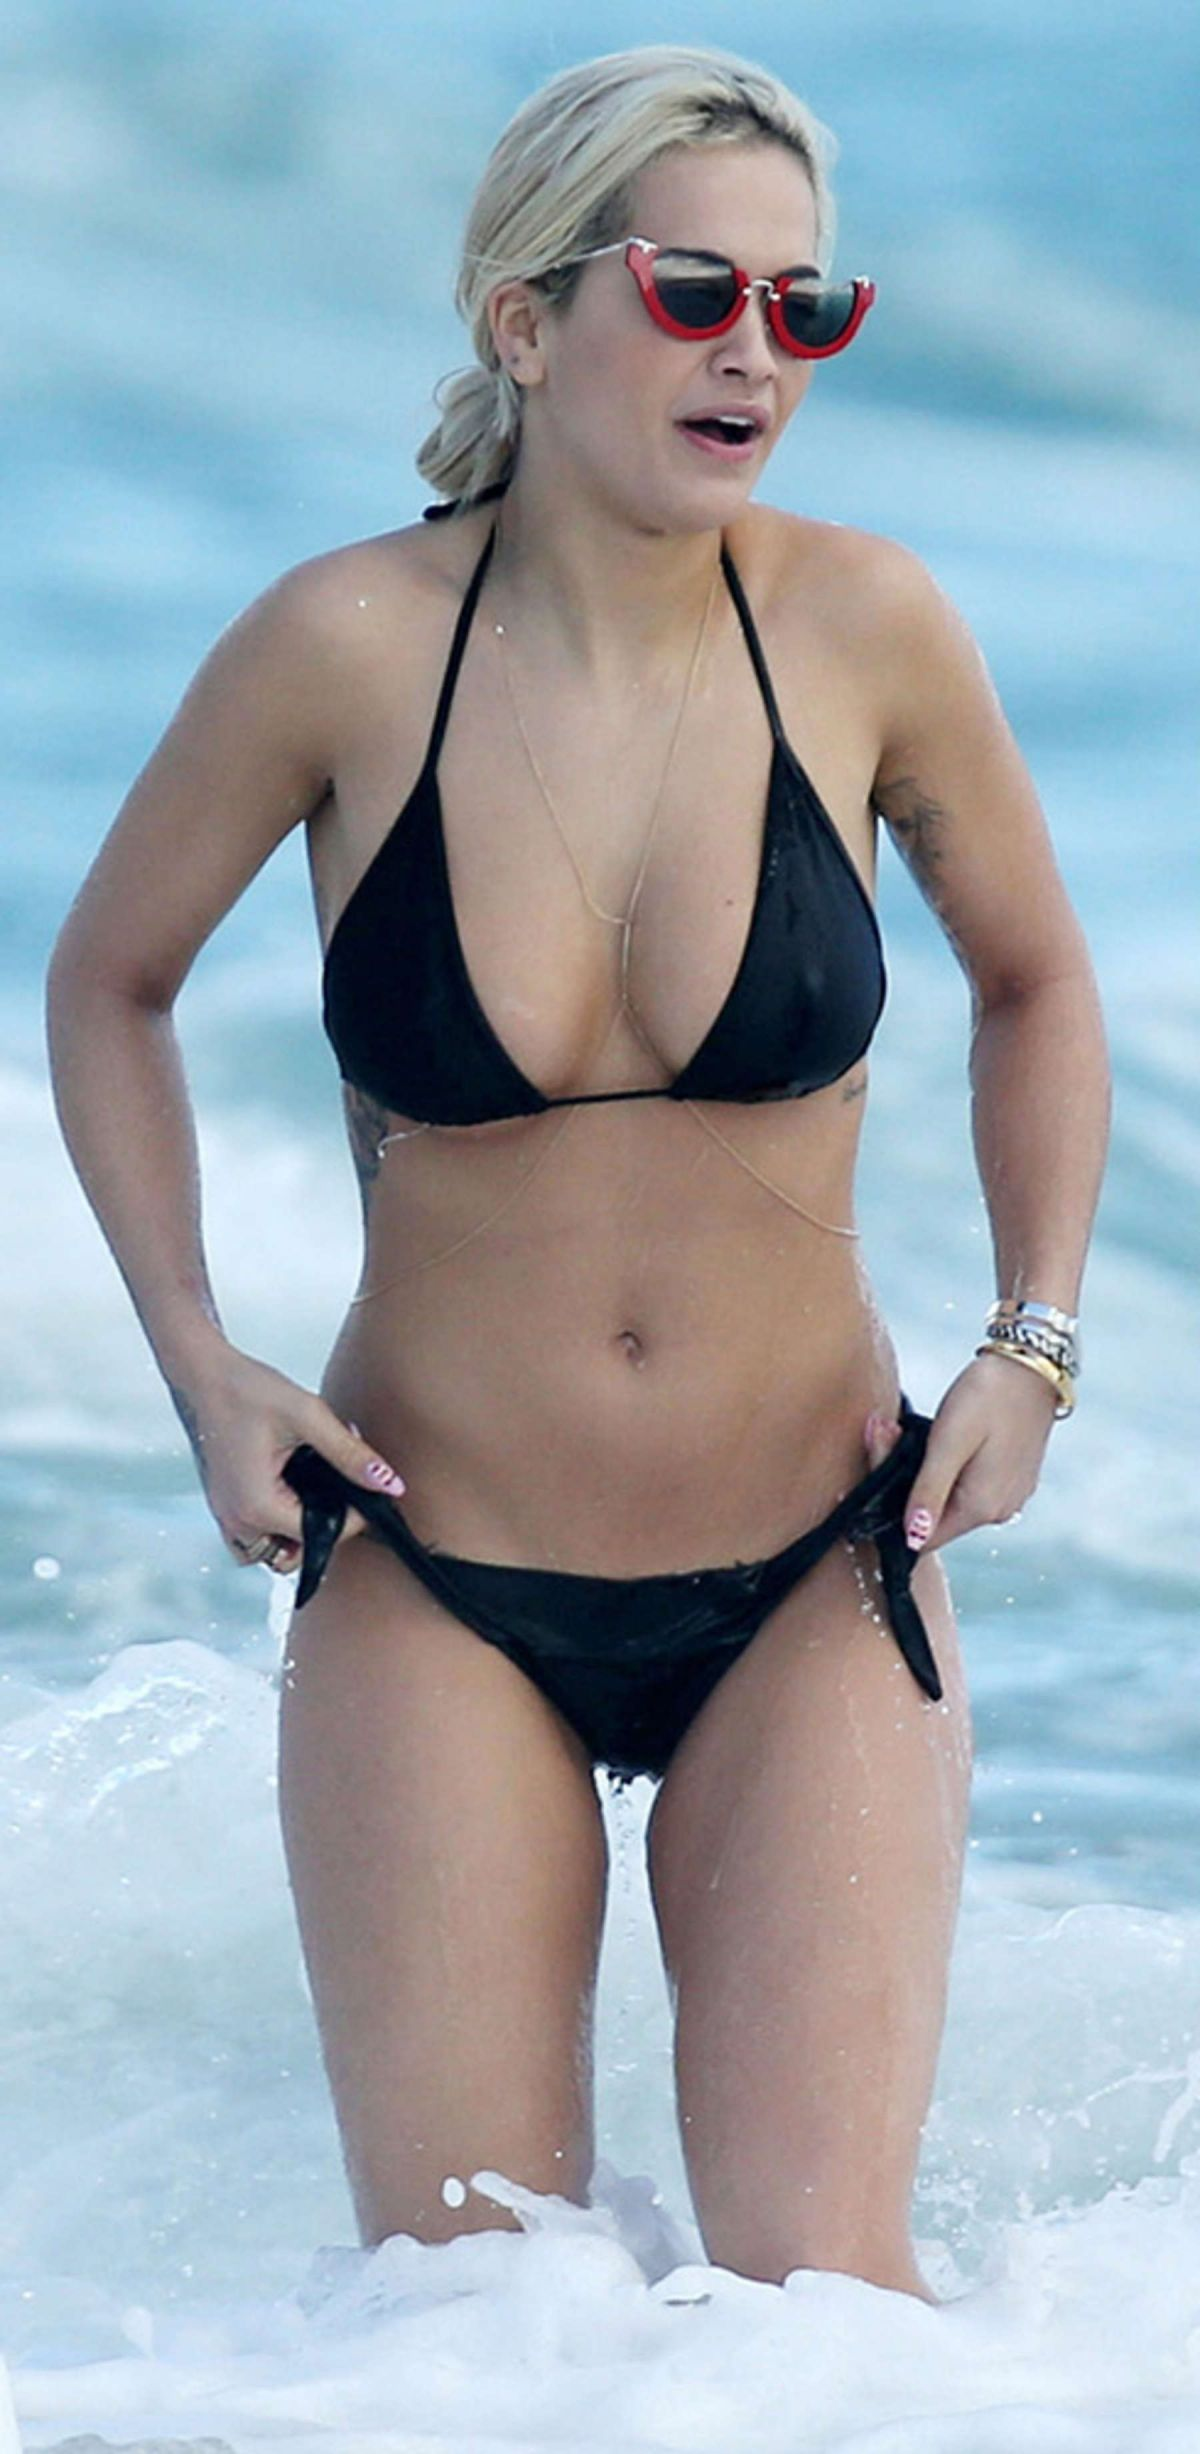 a04a8e0333 Rita Ora In A Bikini On A Beach In Miami